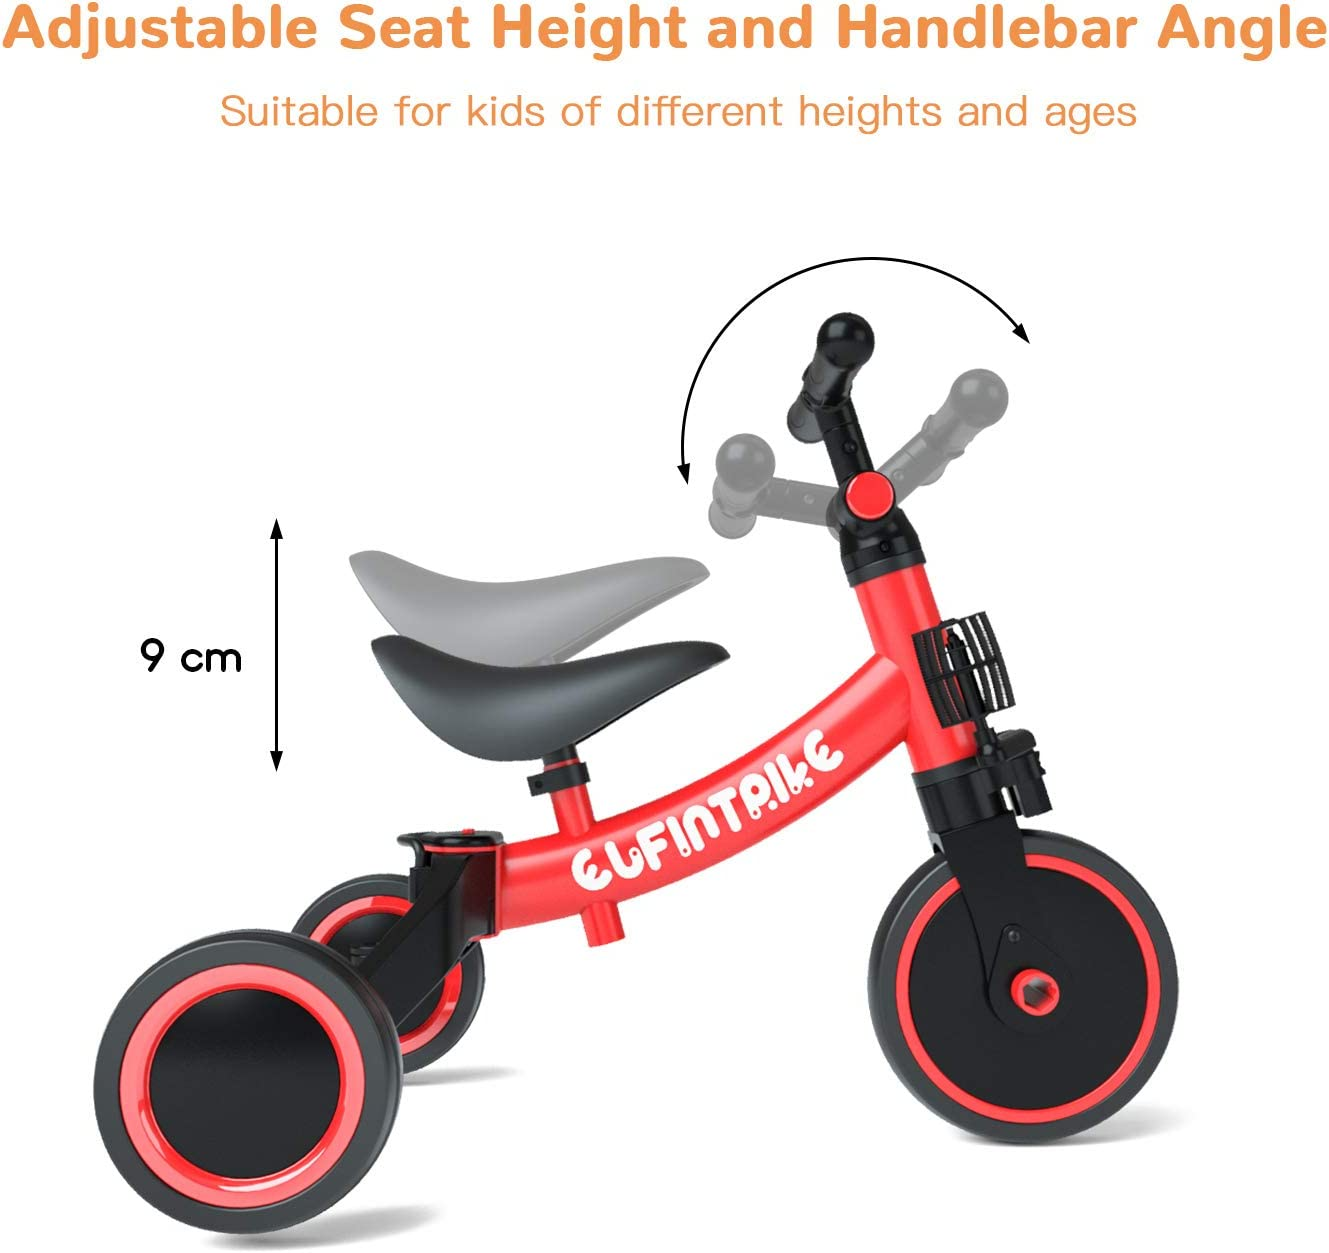 besrey 5 in 1 Toddler Bike for 1-3 Years Old Kids Toddler Tricycle Kids Trikes Tricycle Ideal for Boys Girls